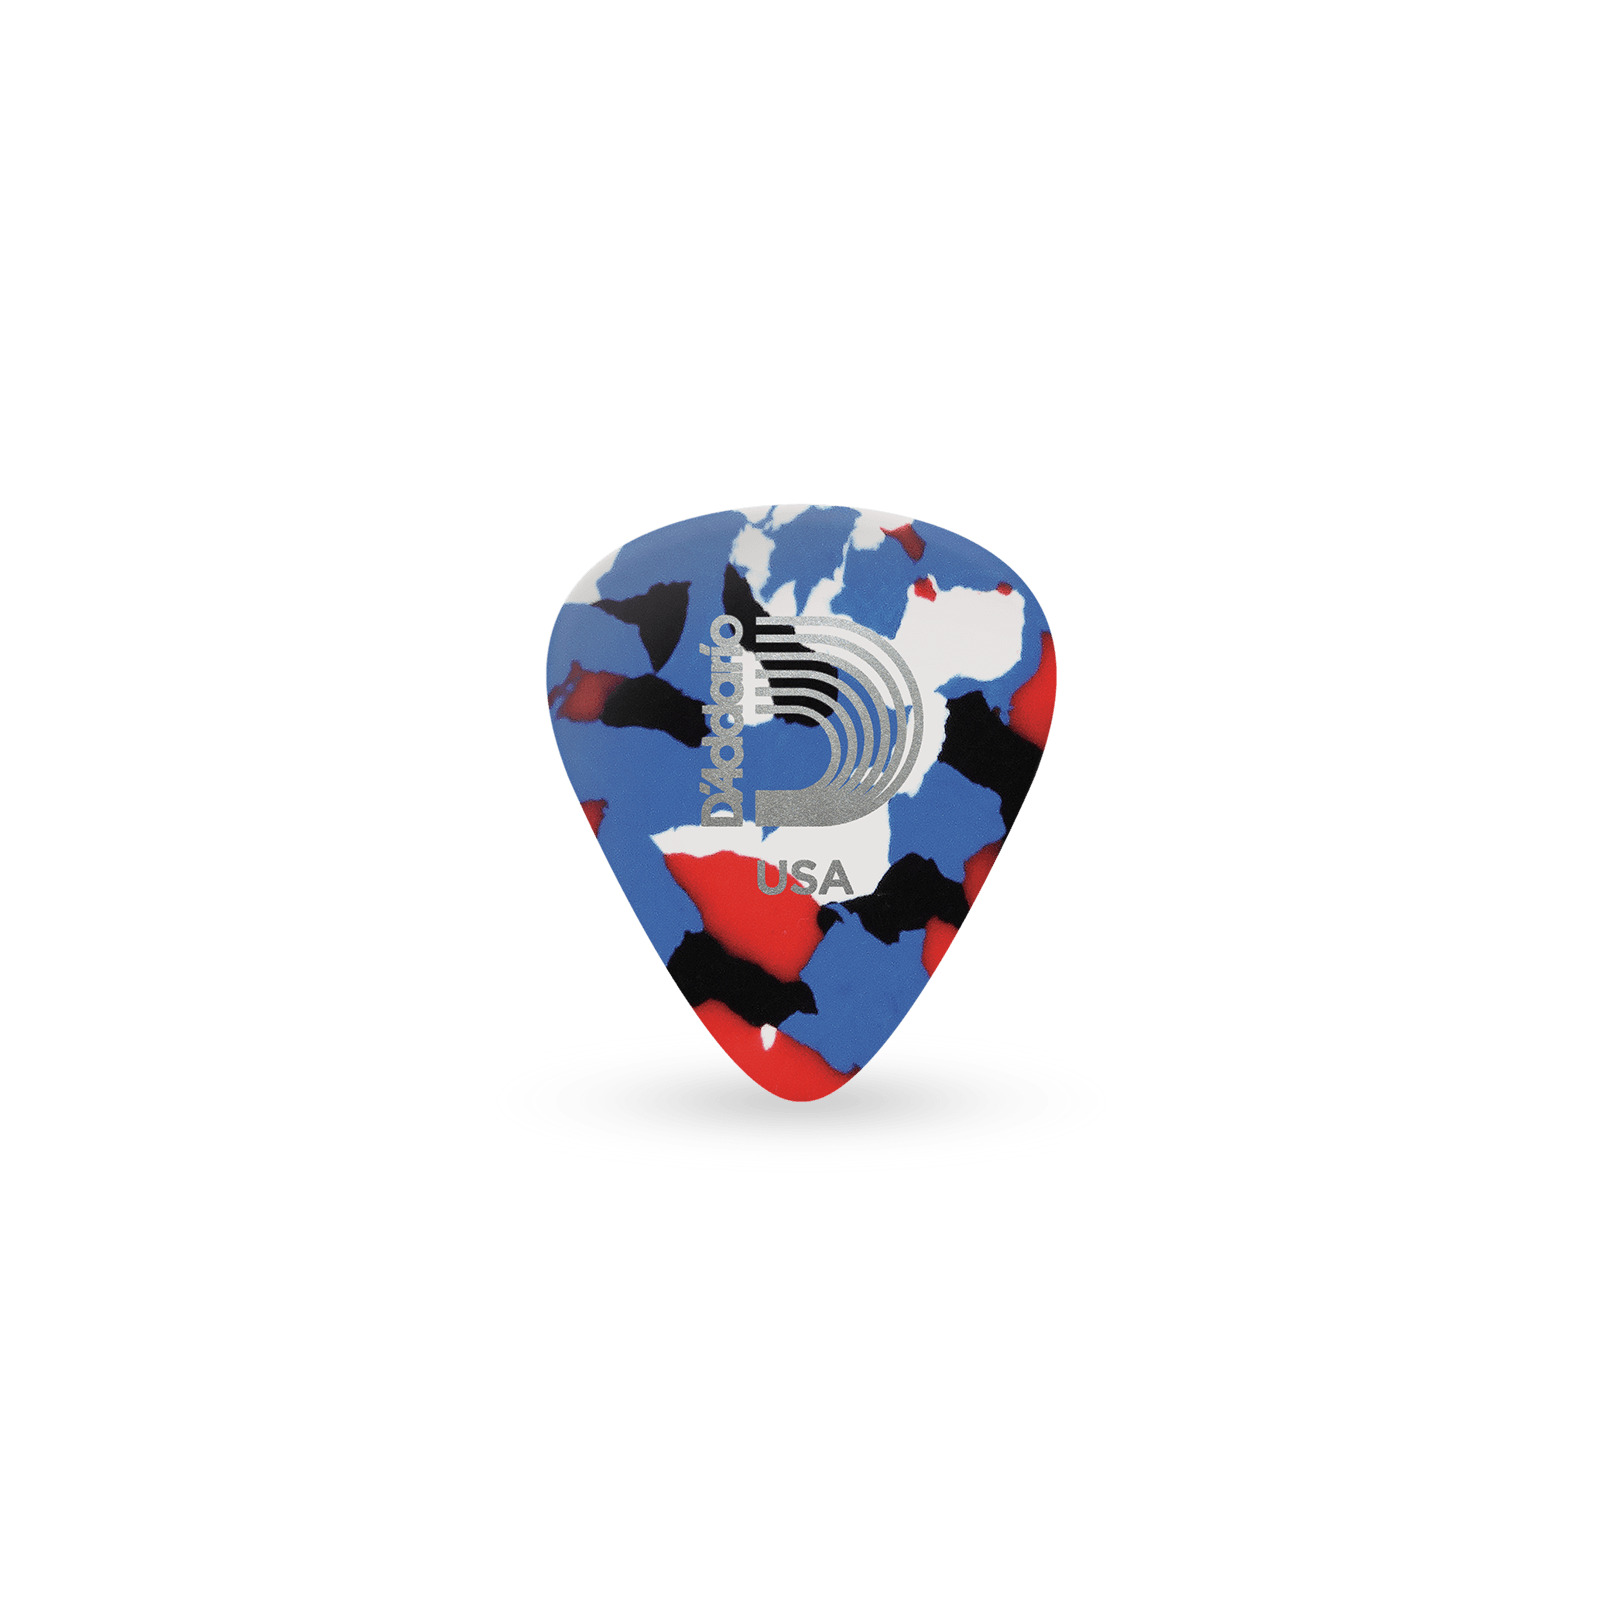 D'ADDARIO MULTI-COLOUR CLASSIC CELLULOID PICKS 0.7MM 25 PACK